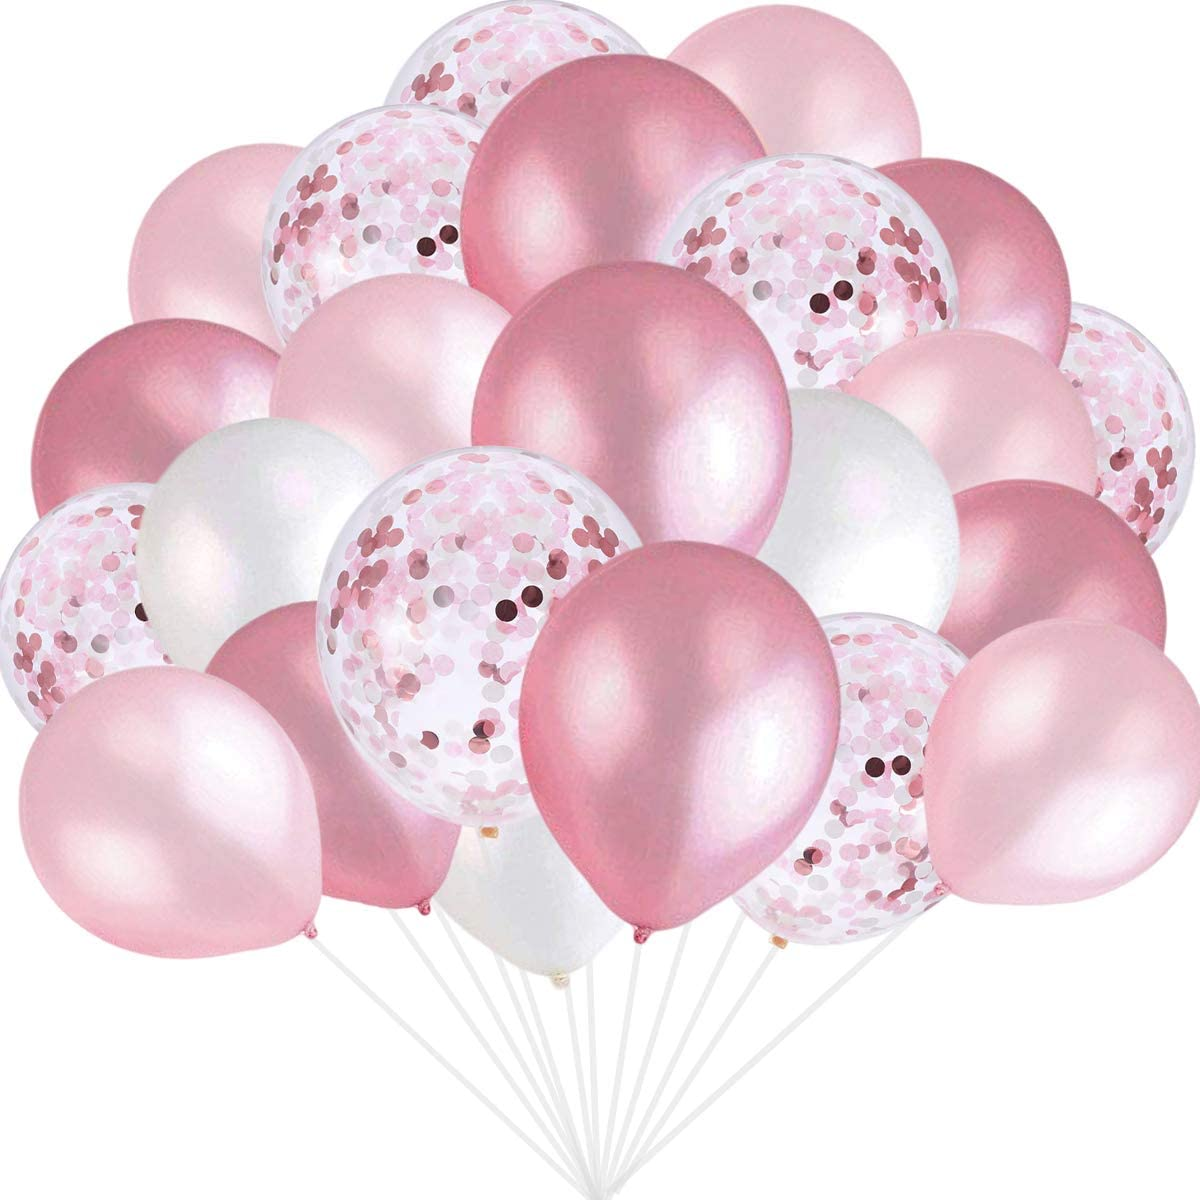 Pink and White Balloons, Pink Confetti Balloons White Balloons Total 90 pcs Latex Party Balloons for Hen Party Wedding Baby Shower Birthday Party Decoration